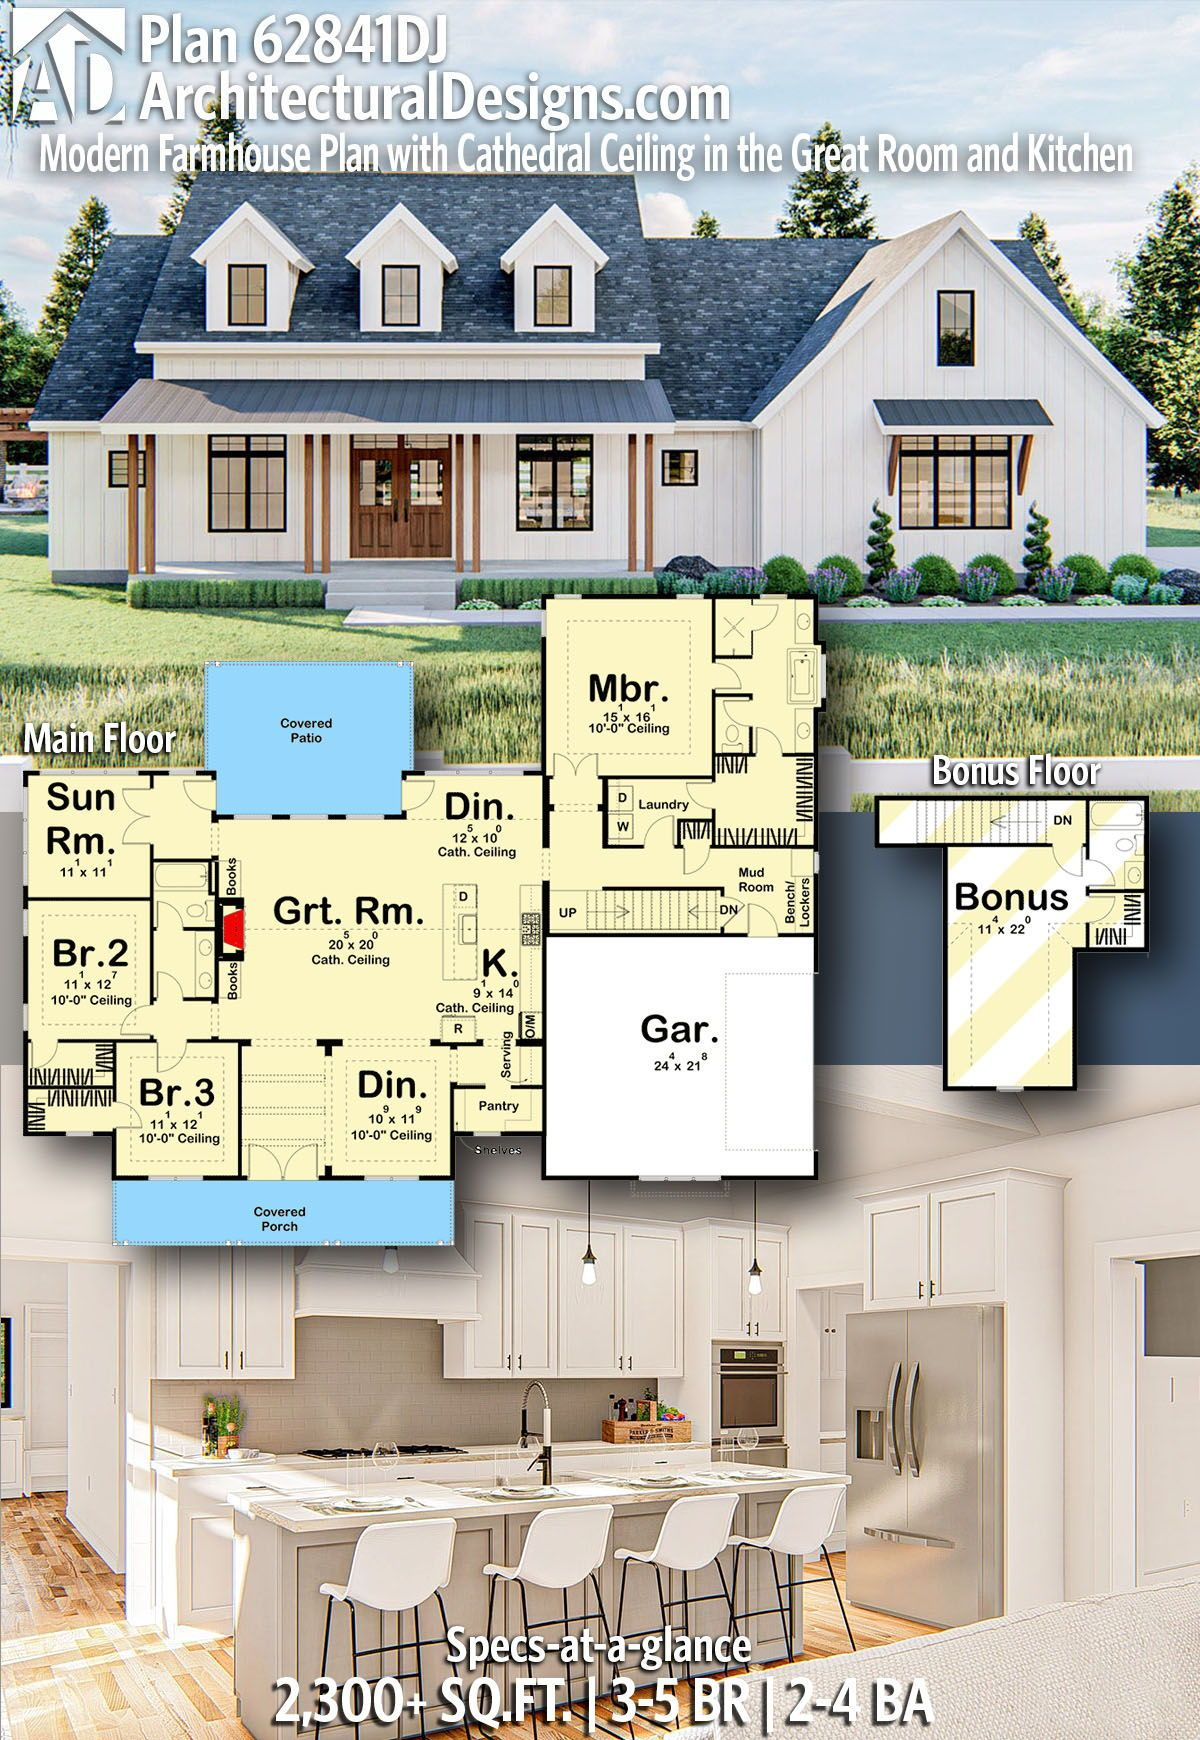 Plan 62841dj Modern Farmhouse Plan With Cathedral Ceiling In The Great Room And Kitchen In 2020 Modern Farmhouse Plans Farmhouse Plans House Plans Farmhouse